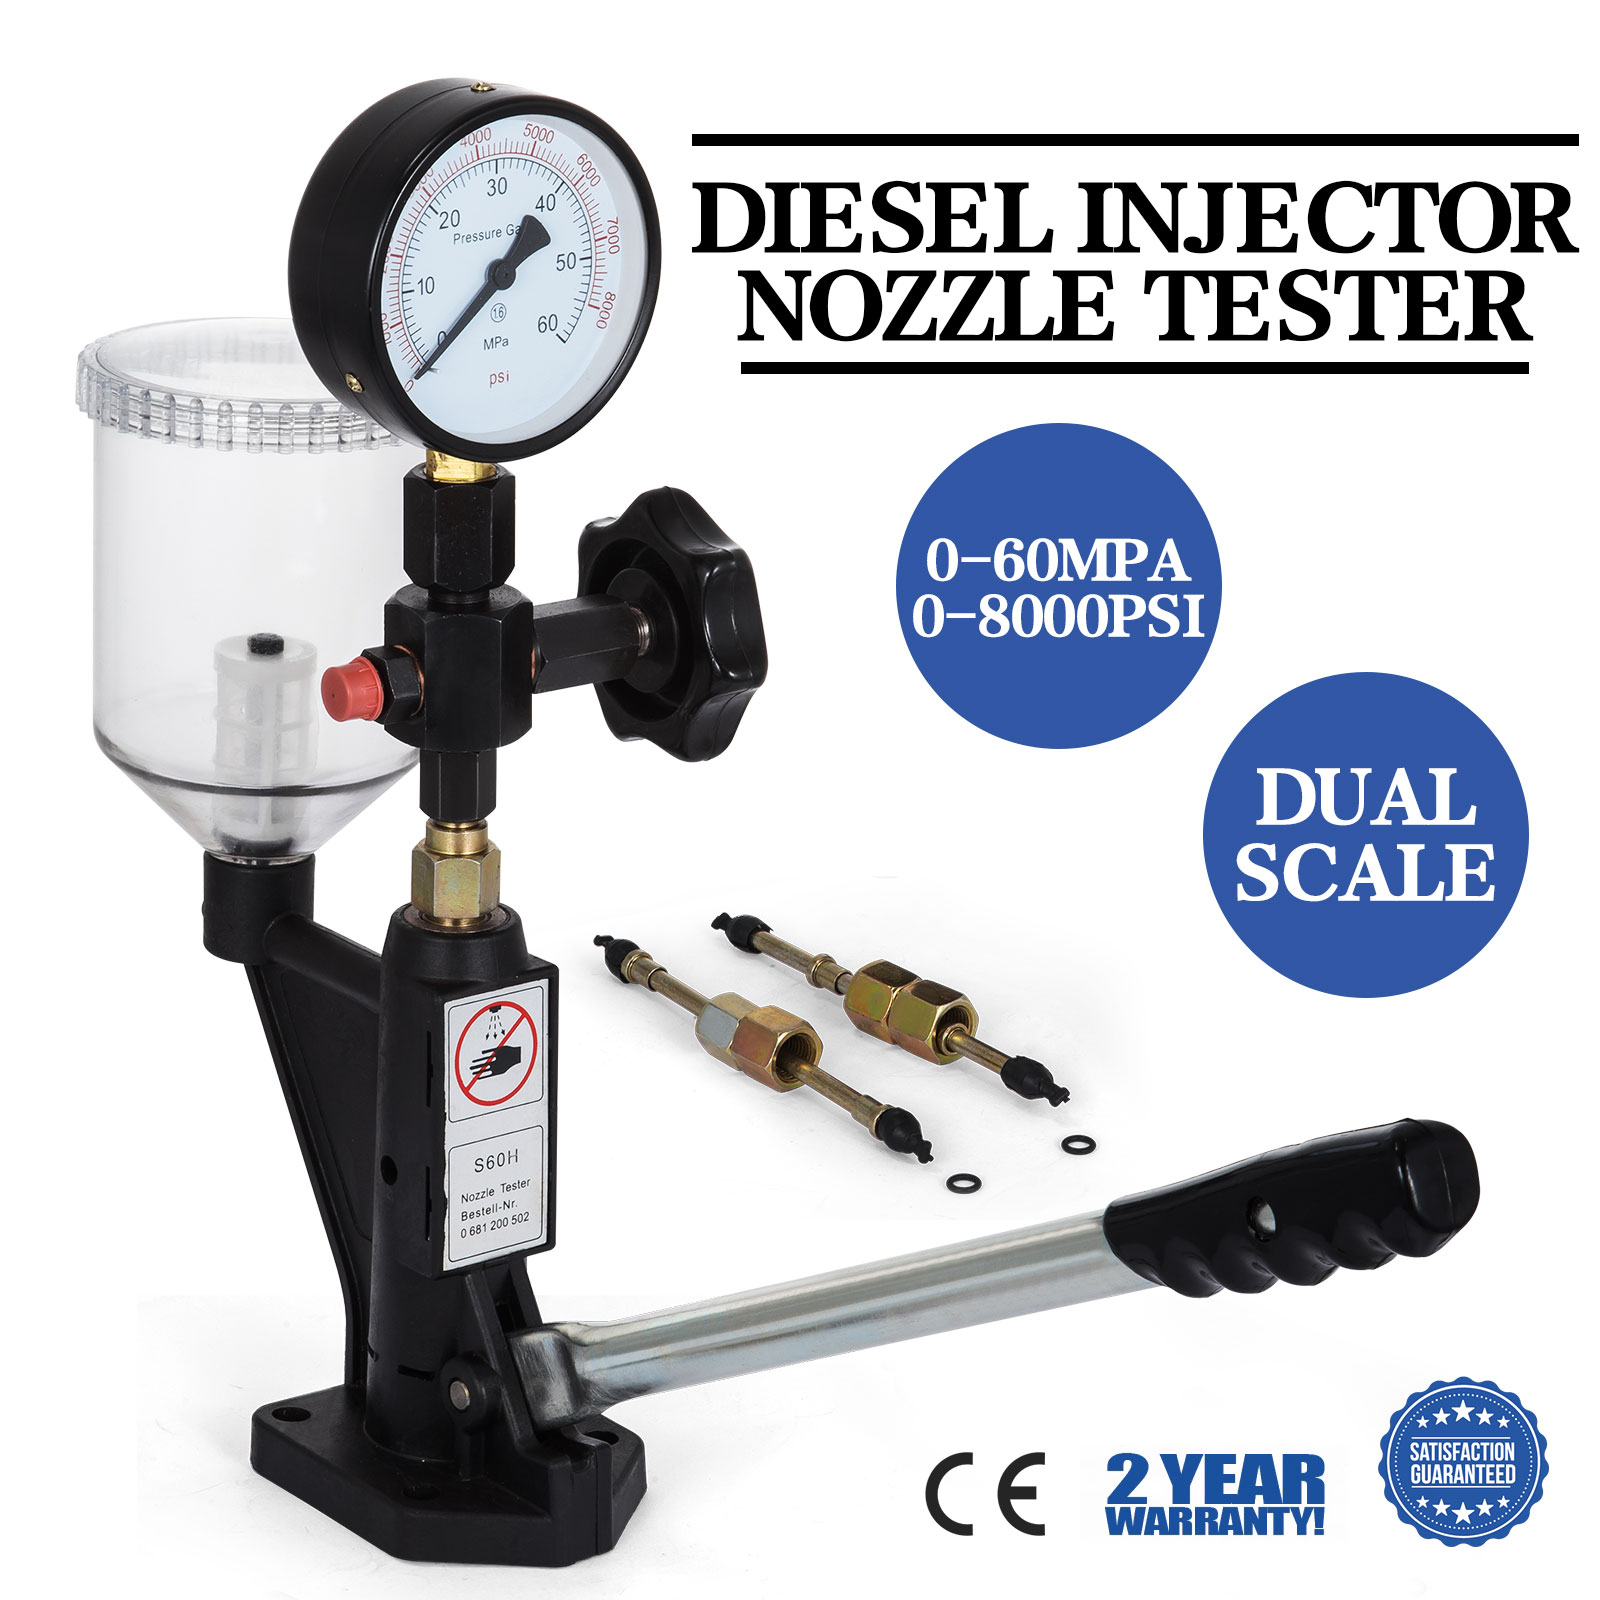 diesel injector nozzles tester device w shockproof pressure gauge 6190 6200 6170 ebay. Black Bedroom Furniture Sets. Home Design Ideas